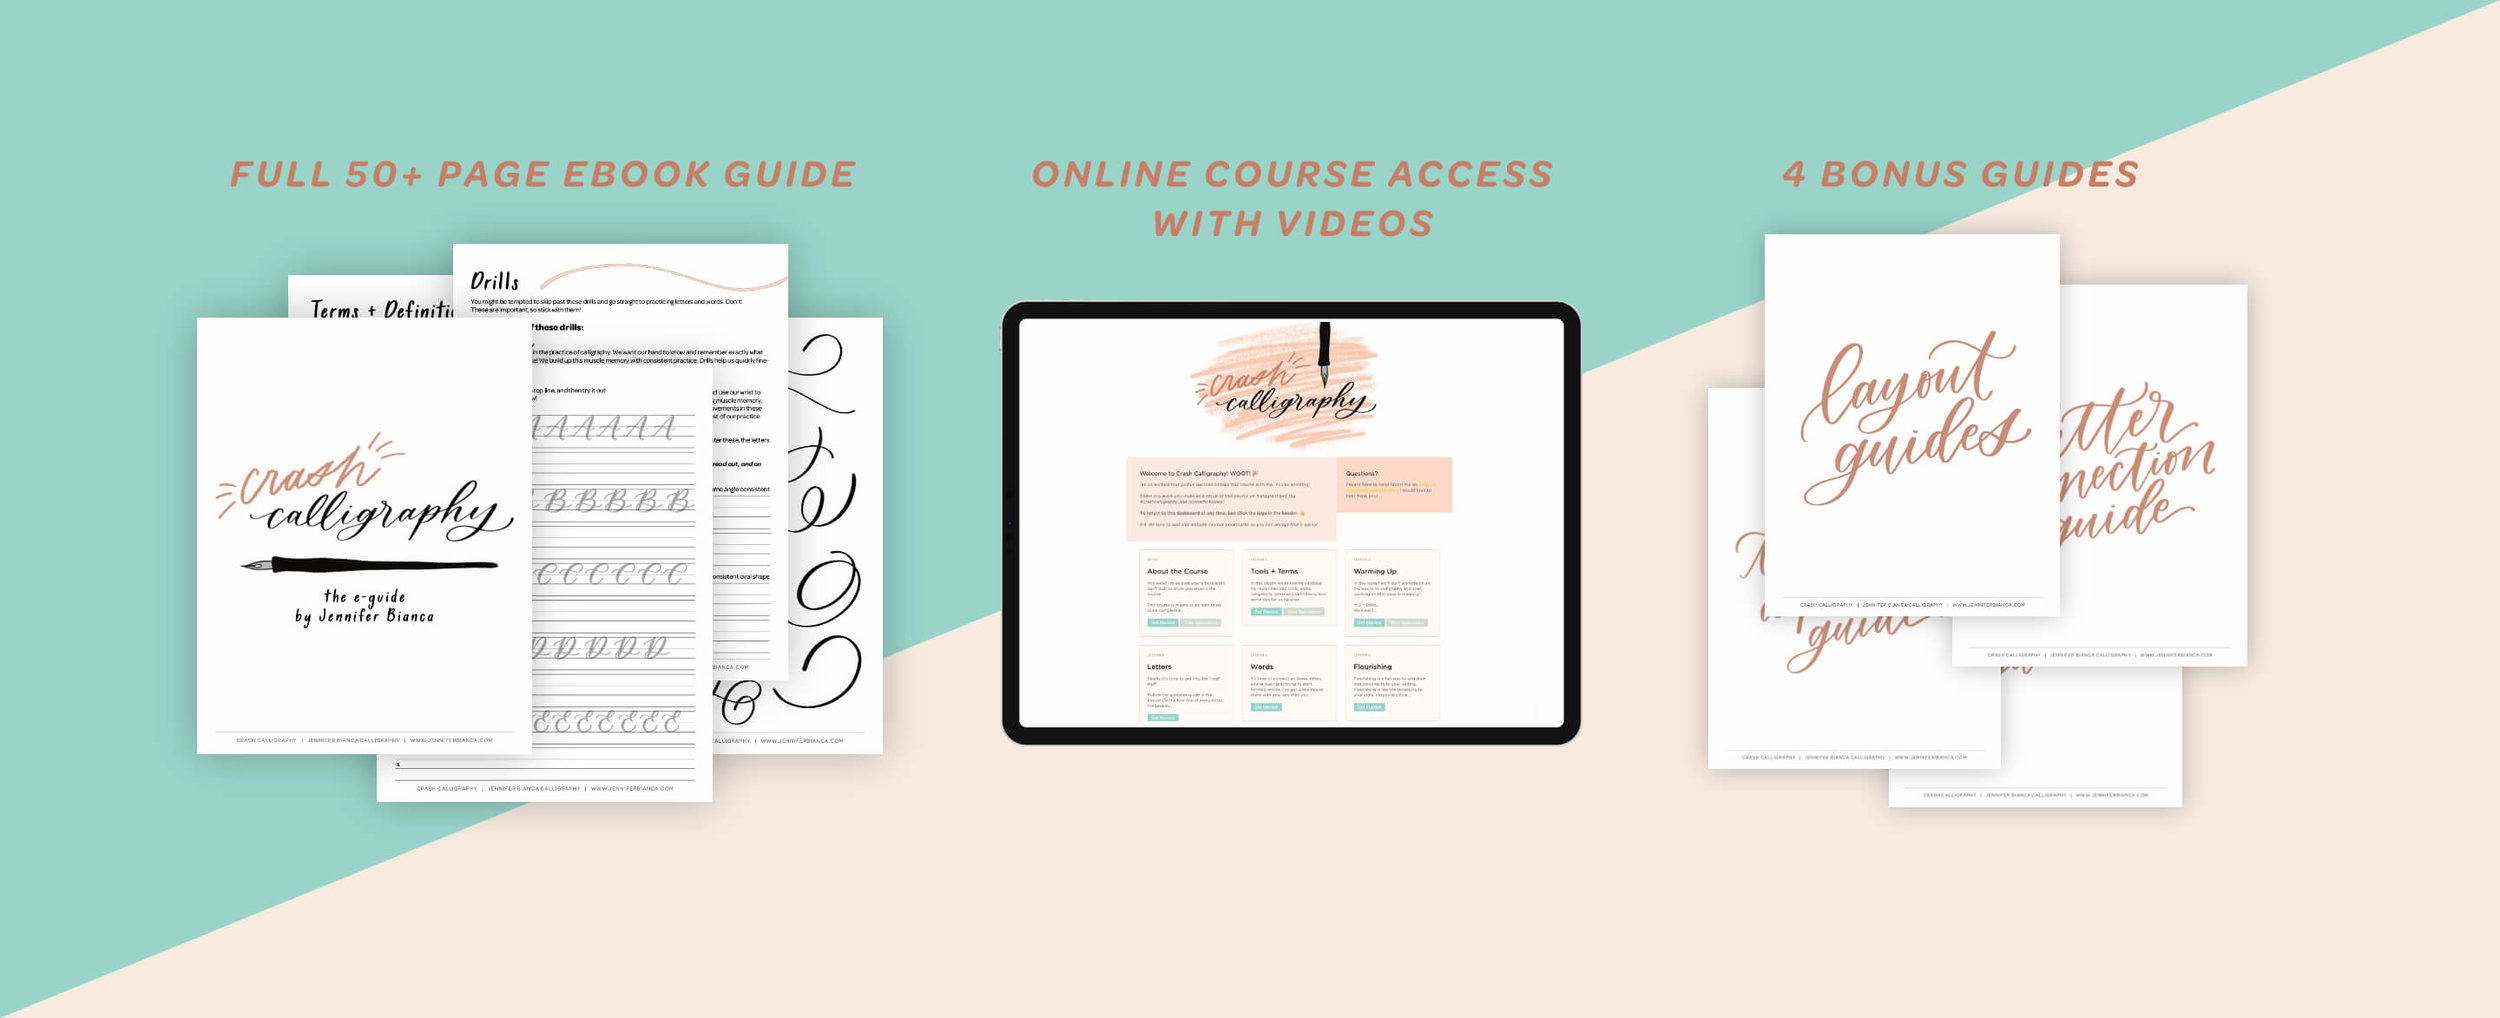 CRASH CALLIGRAPHY - + Full 50 page ebook guide (printable + traceable!)+ Online course access with videos+ Bonus Layout Guide+ Bonus Letter Connection Guide+ TWO Bonus Alphabet Guides (in Traditional and Delicate styles)